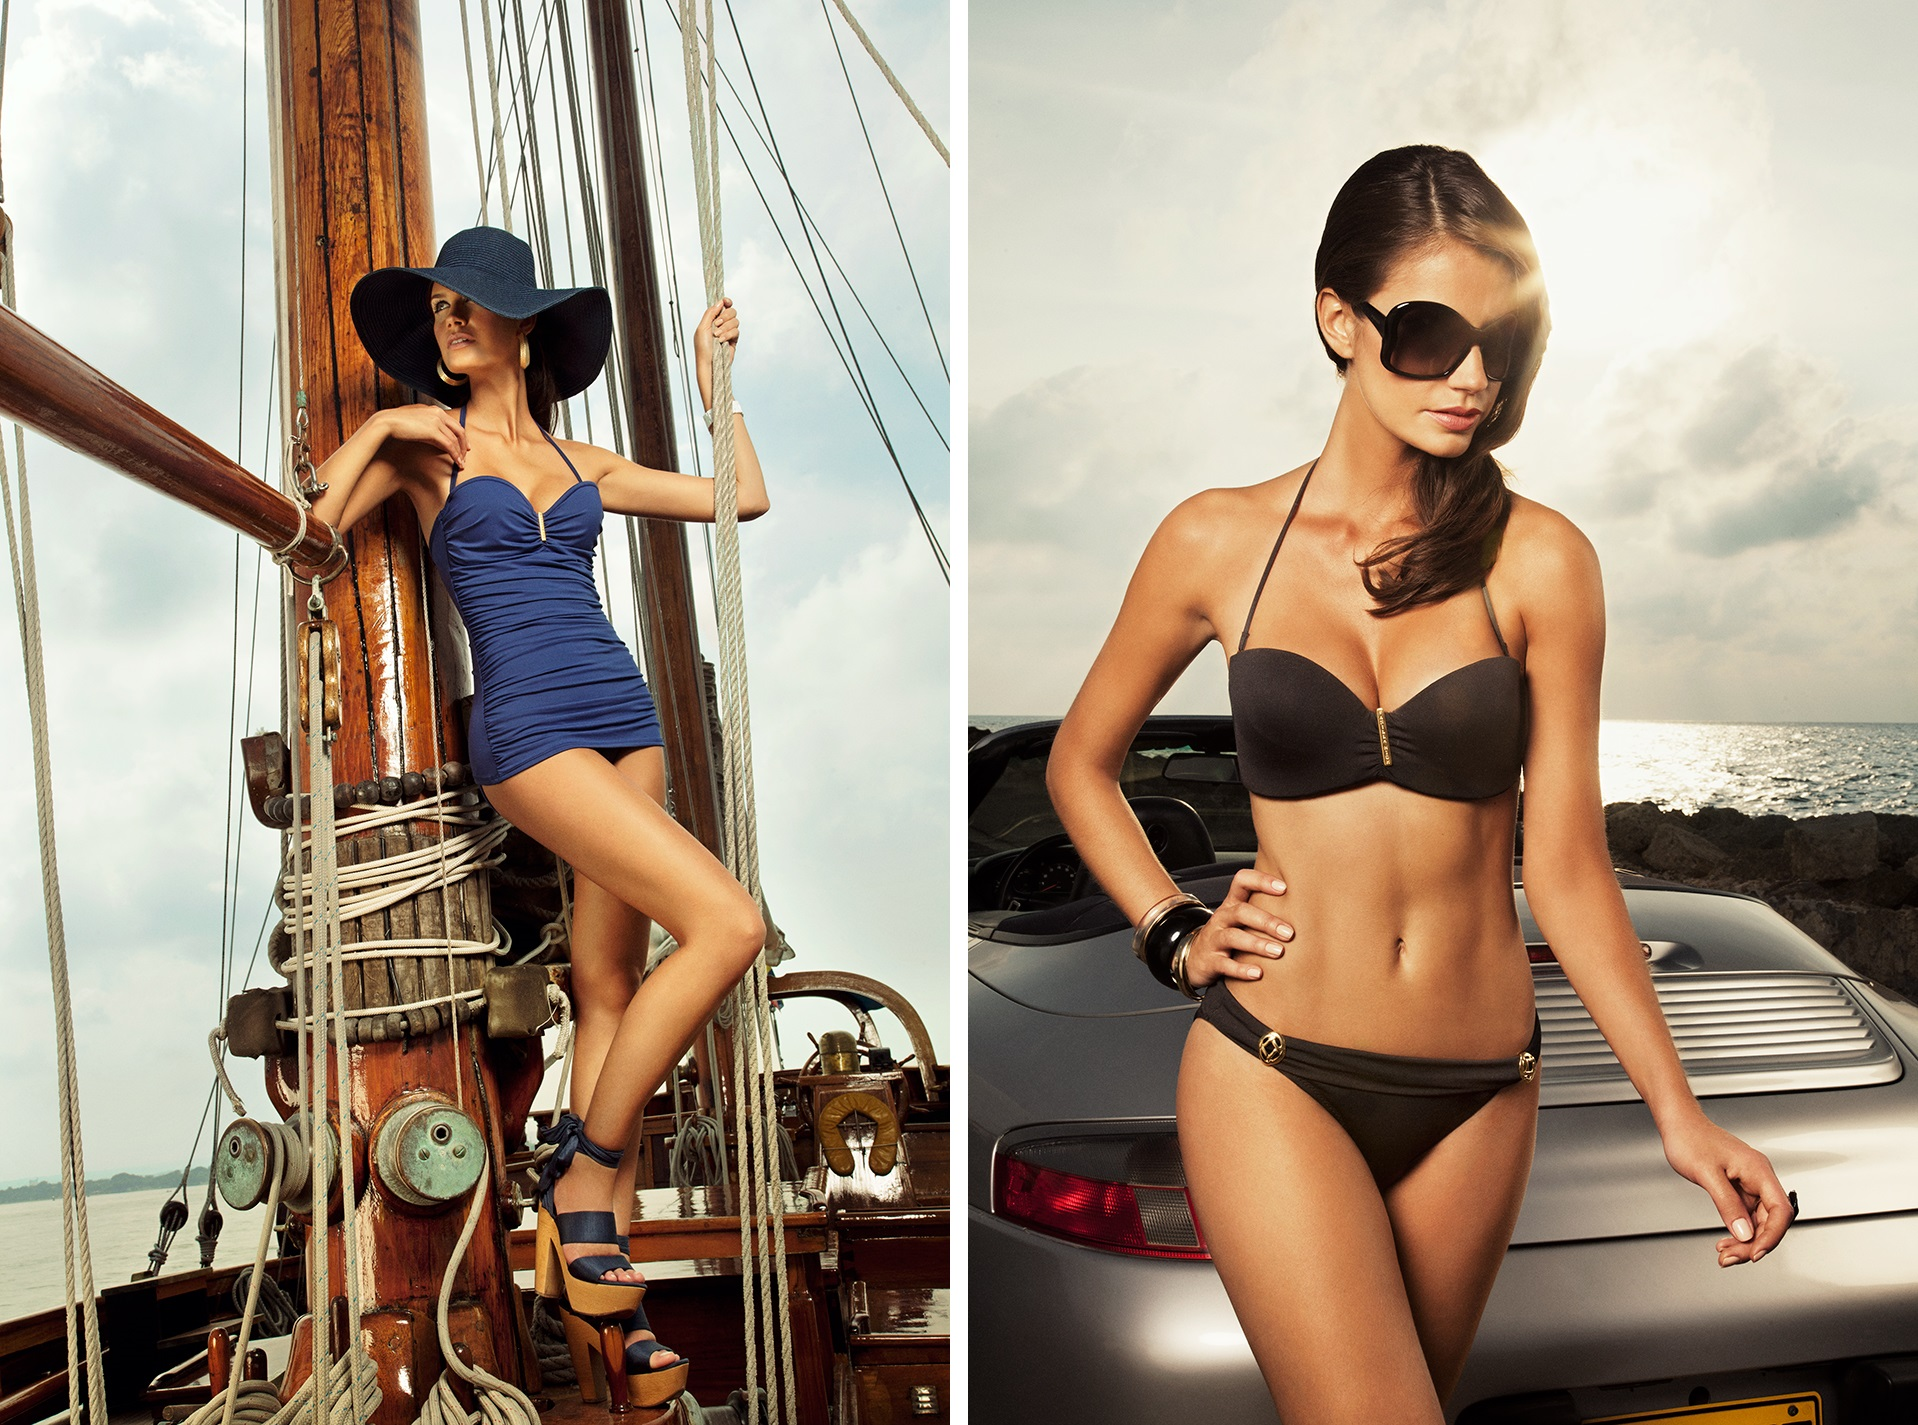 Left: Nantucket Retro Maillot Right: Sobe Strapless Images courtesy of Verano High